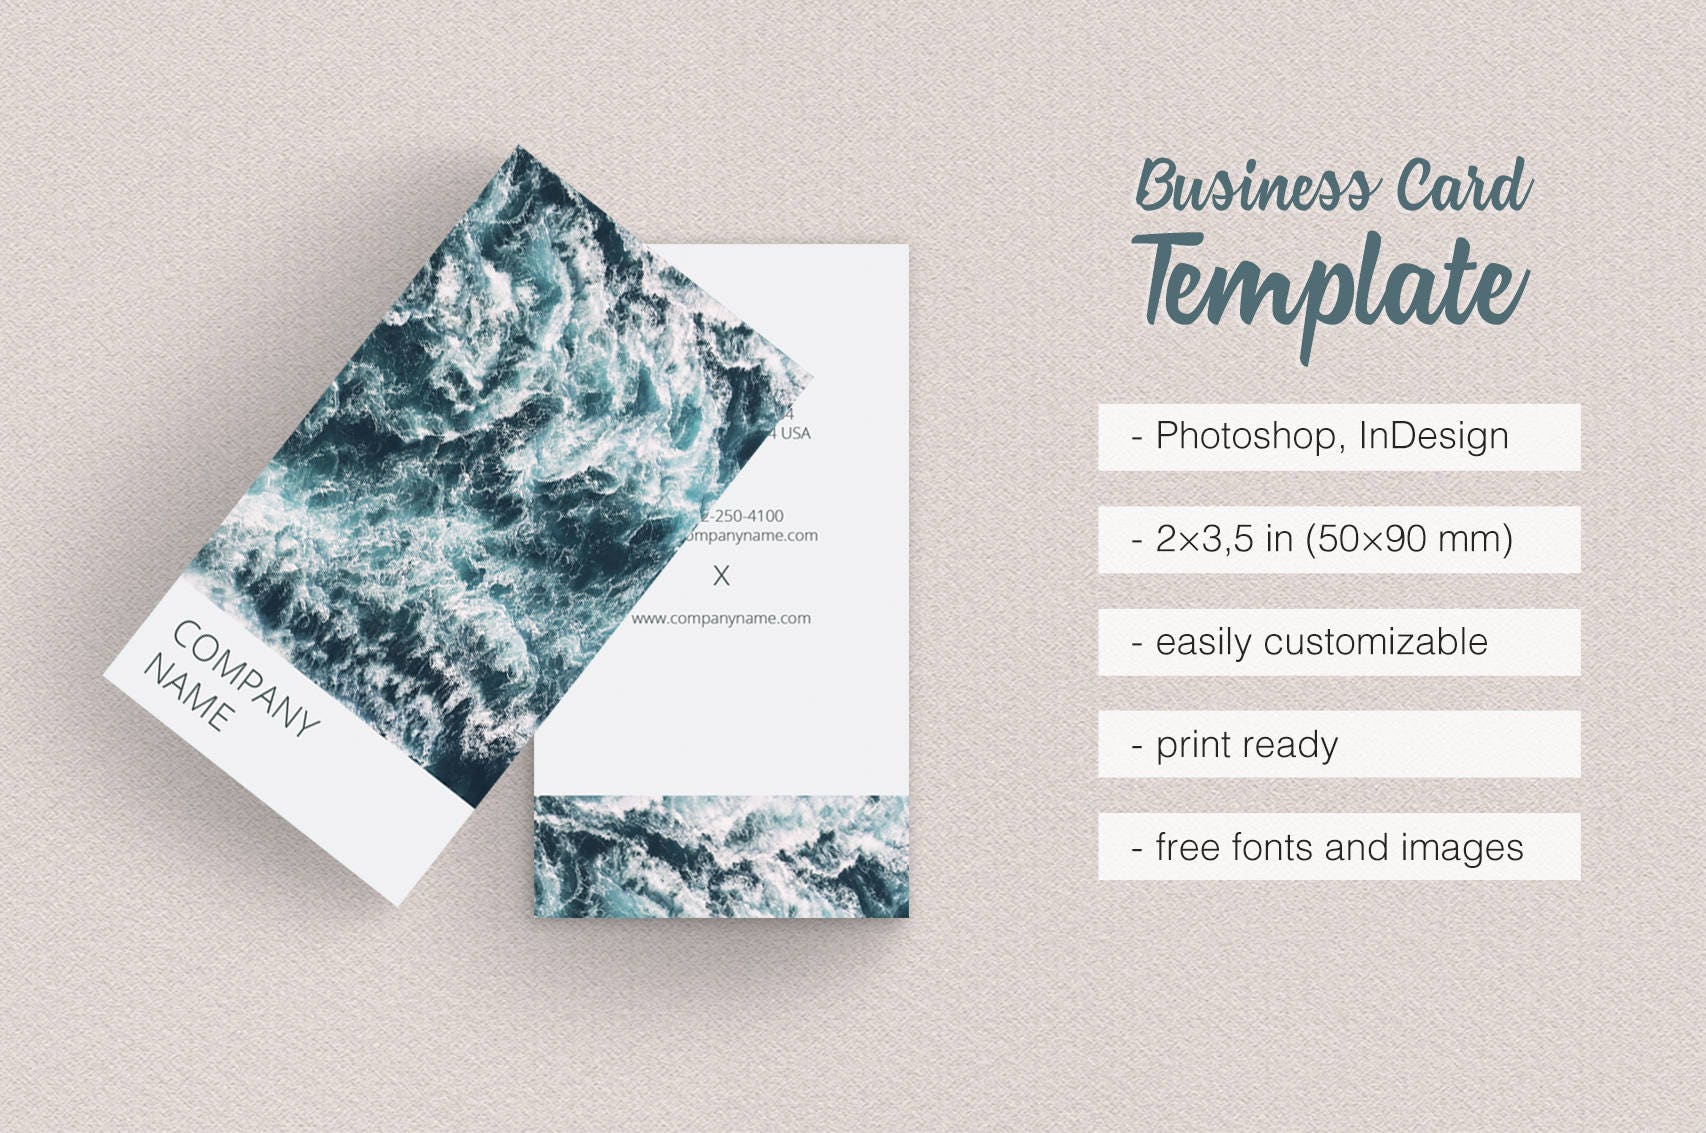 Asian Dream Business Card Template Simple and Clean Design